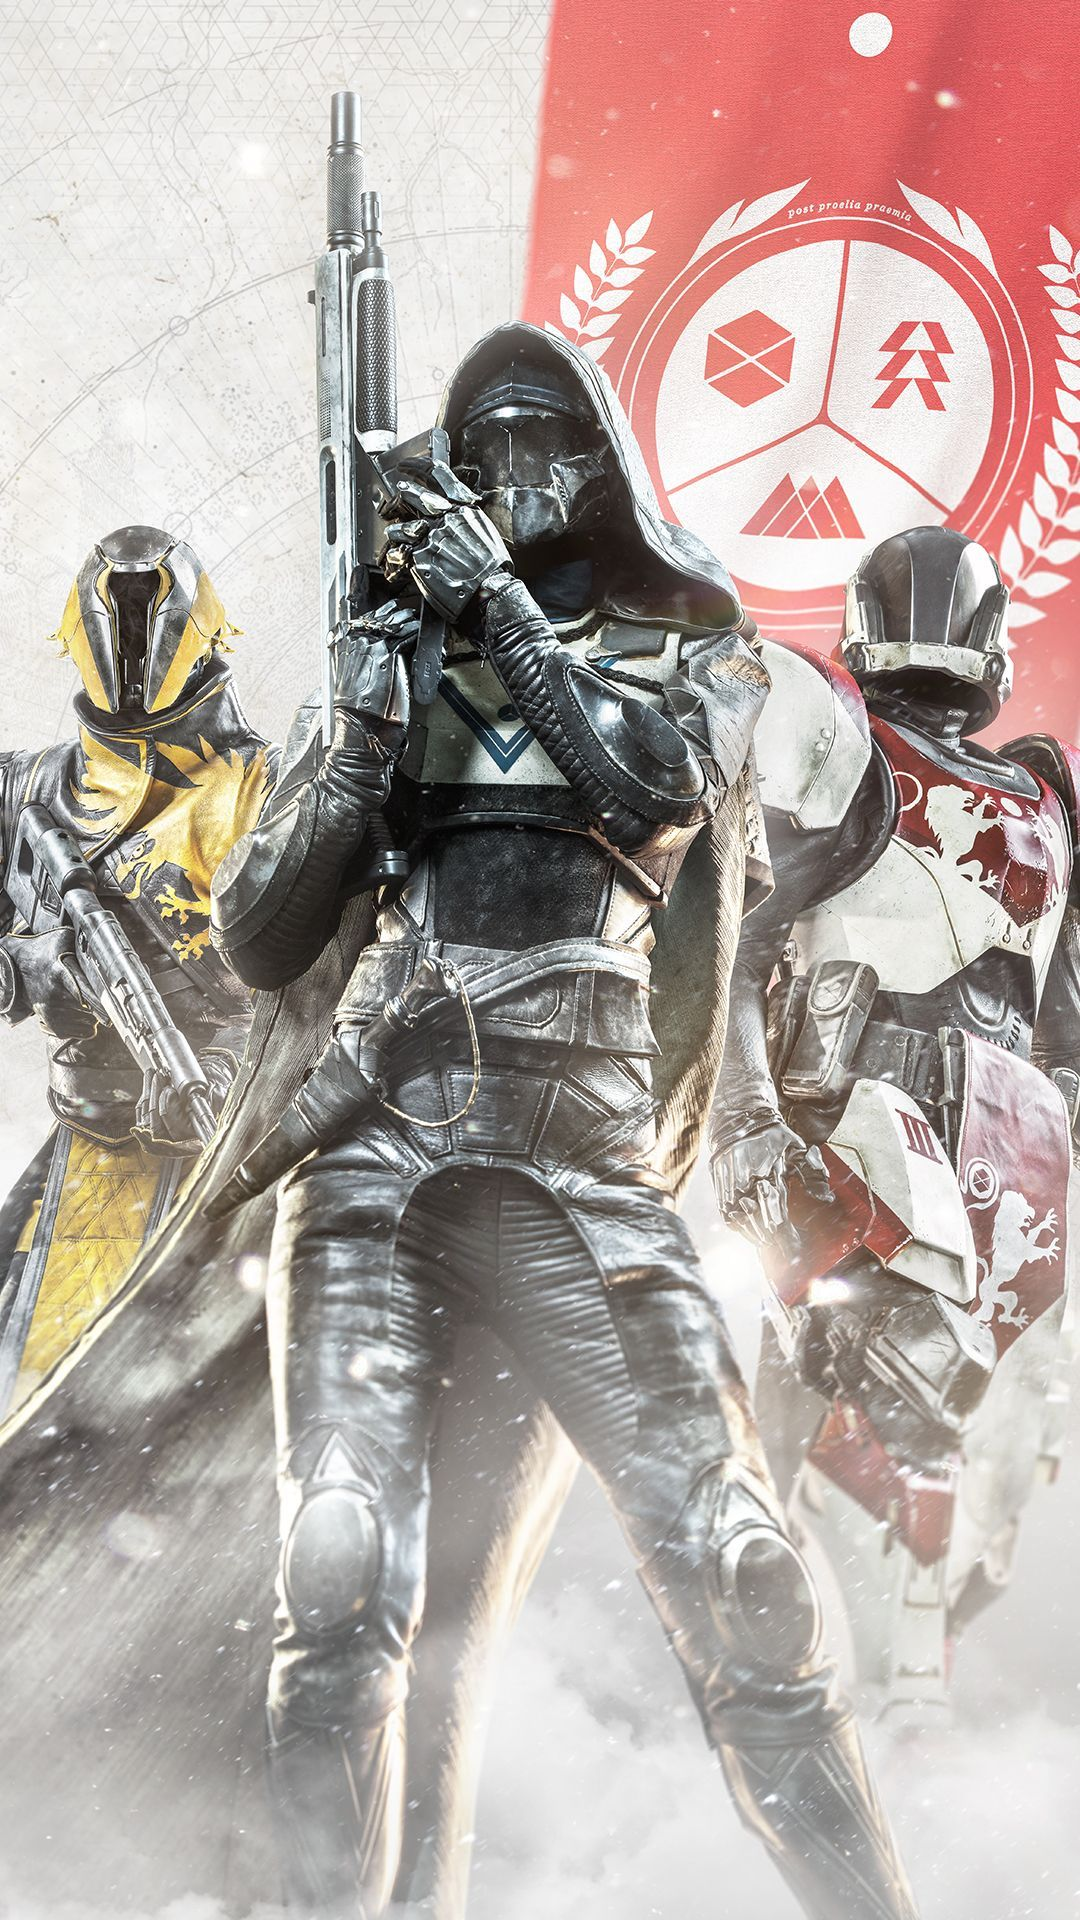 Top 5 Destiny Hd Wallpapers For Your Android Or Iphone Wallpapers Android Iphone Wallpaper Destiny Wallpaper Hd Destiny Game Destiny Hunter